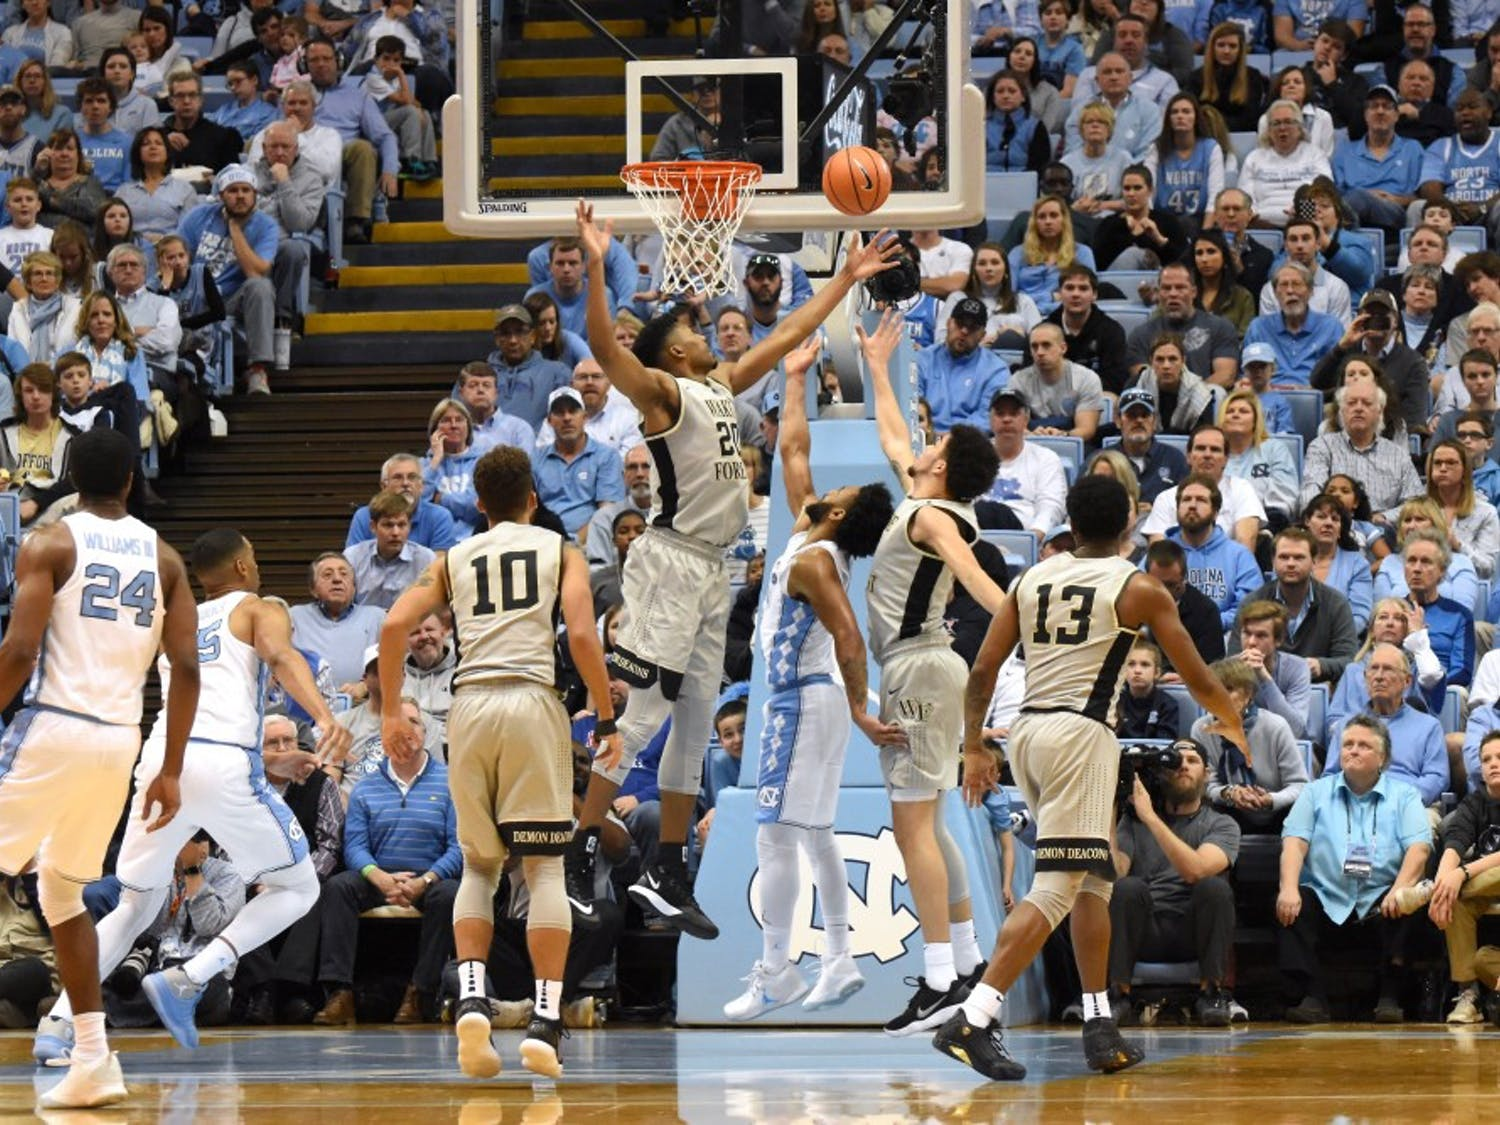 UNC men's basketball is now 1-0 in the Atlantic Coast Conference after defeating Wake Forest 73-69 at home.